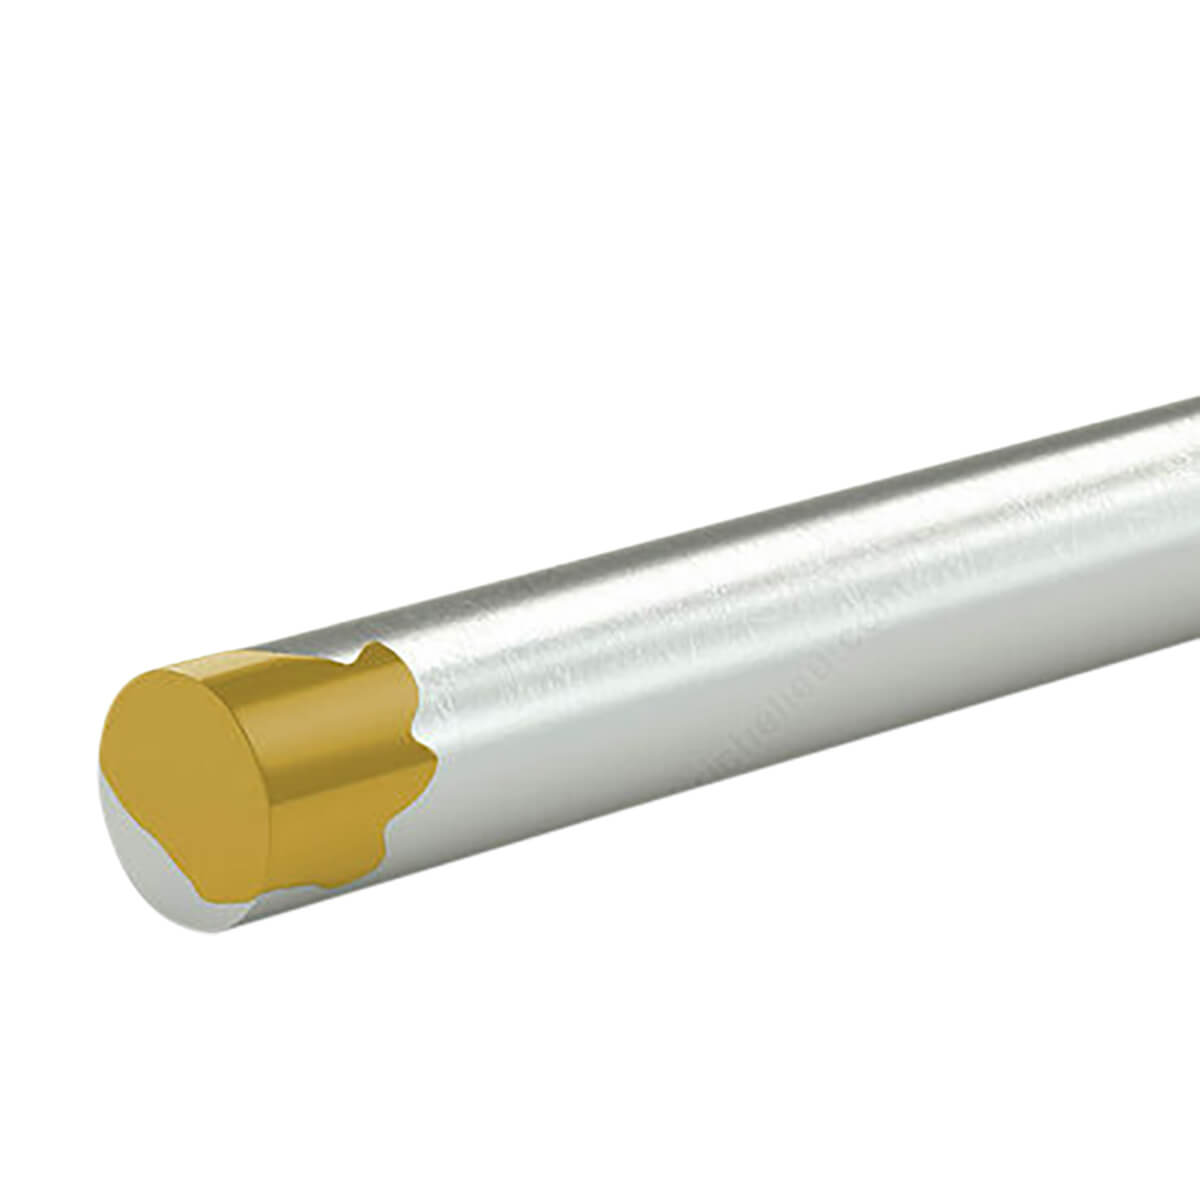 Unthreaded Rod - Yellow Tip - 3/8-in X 36-in